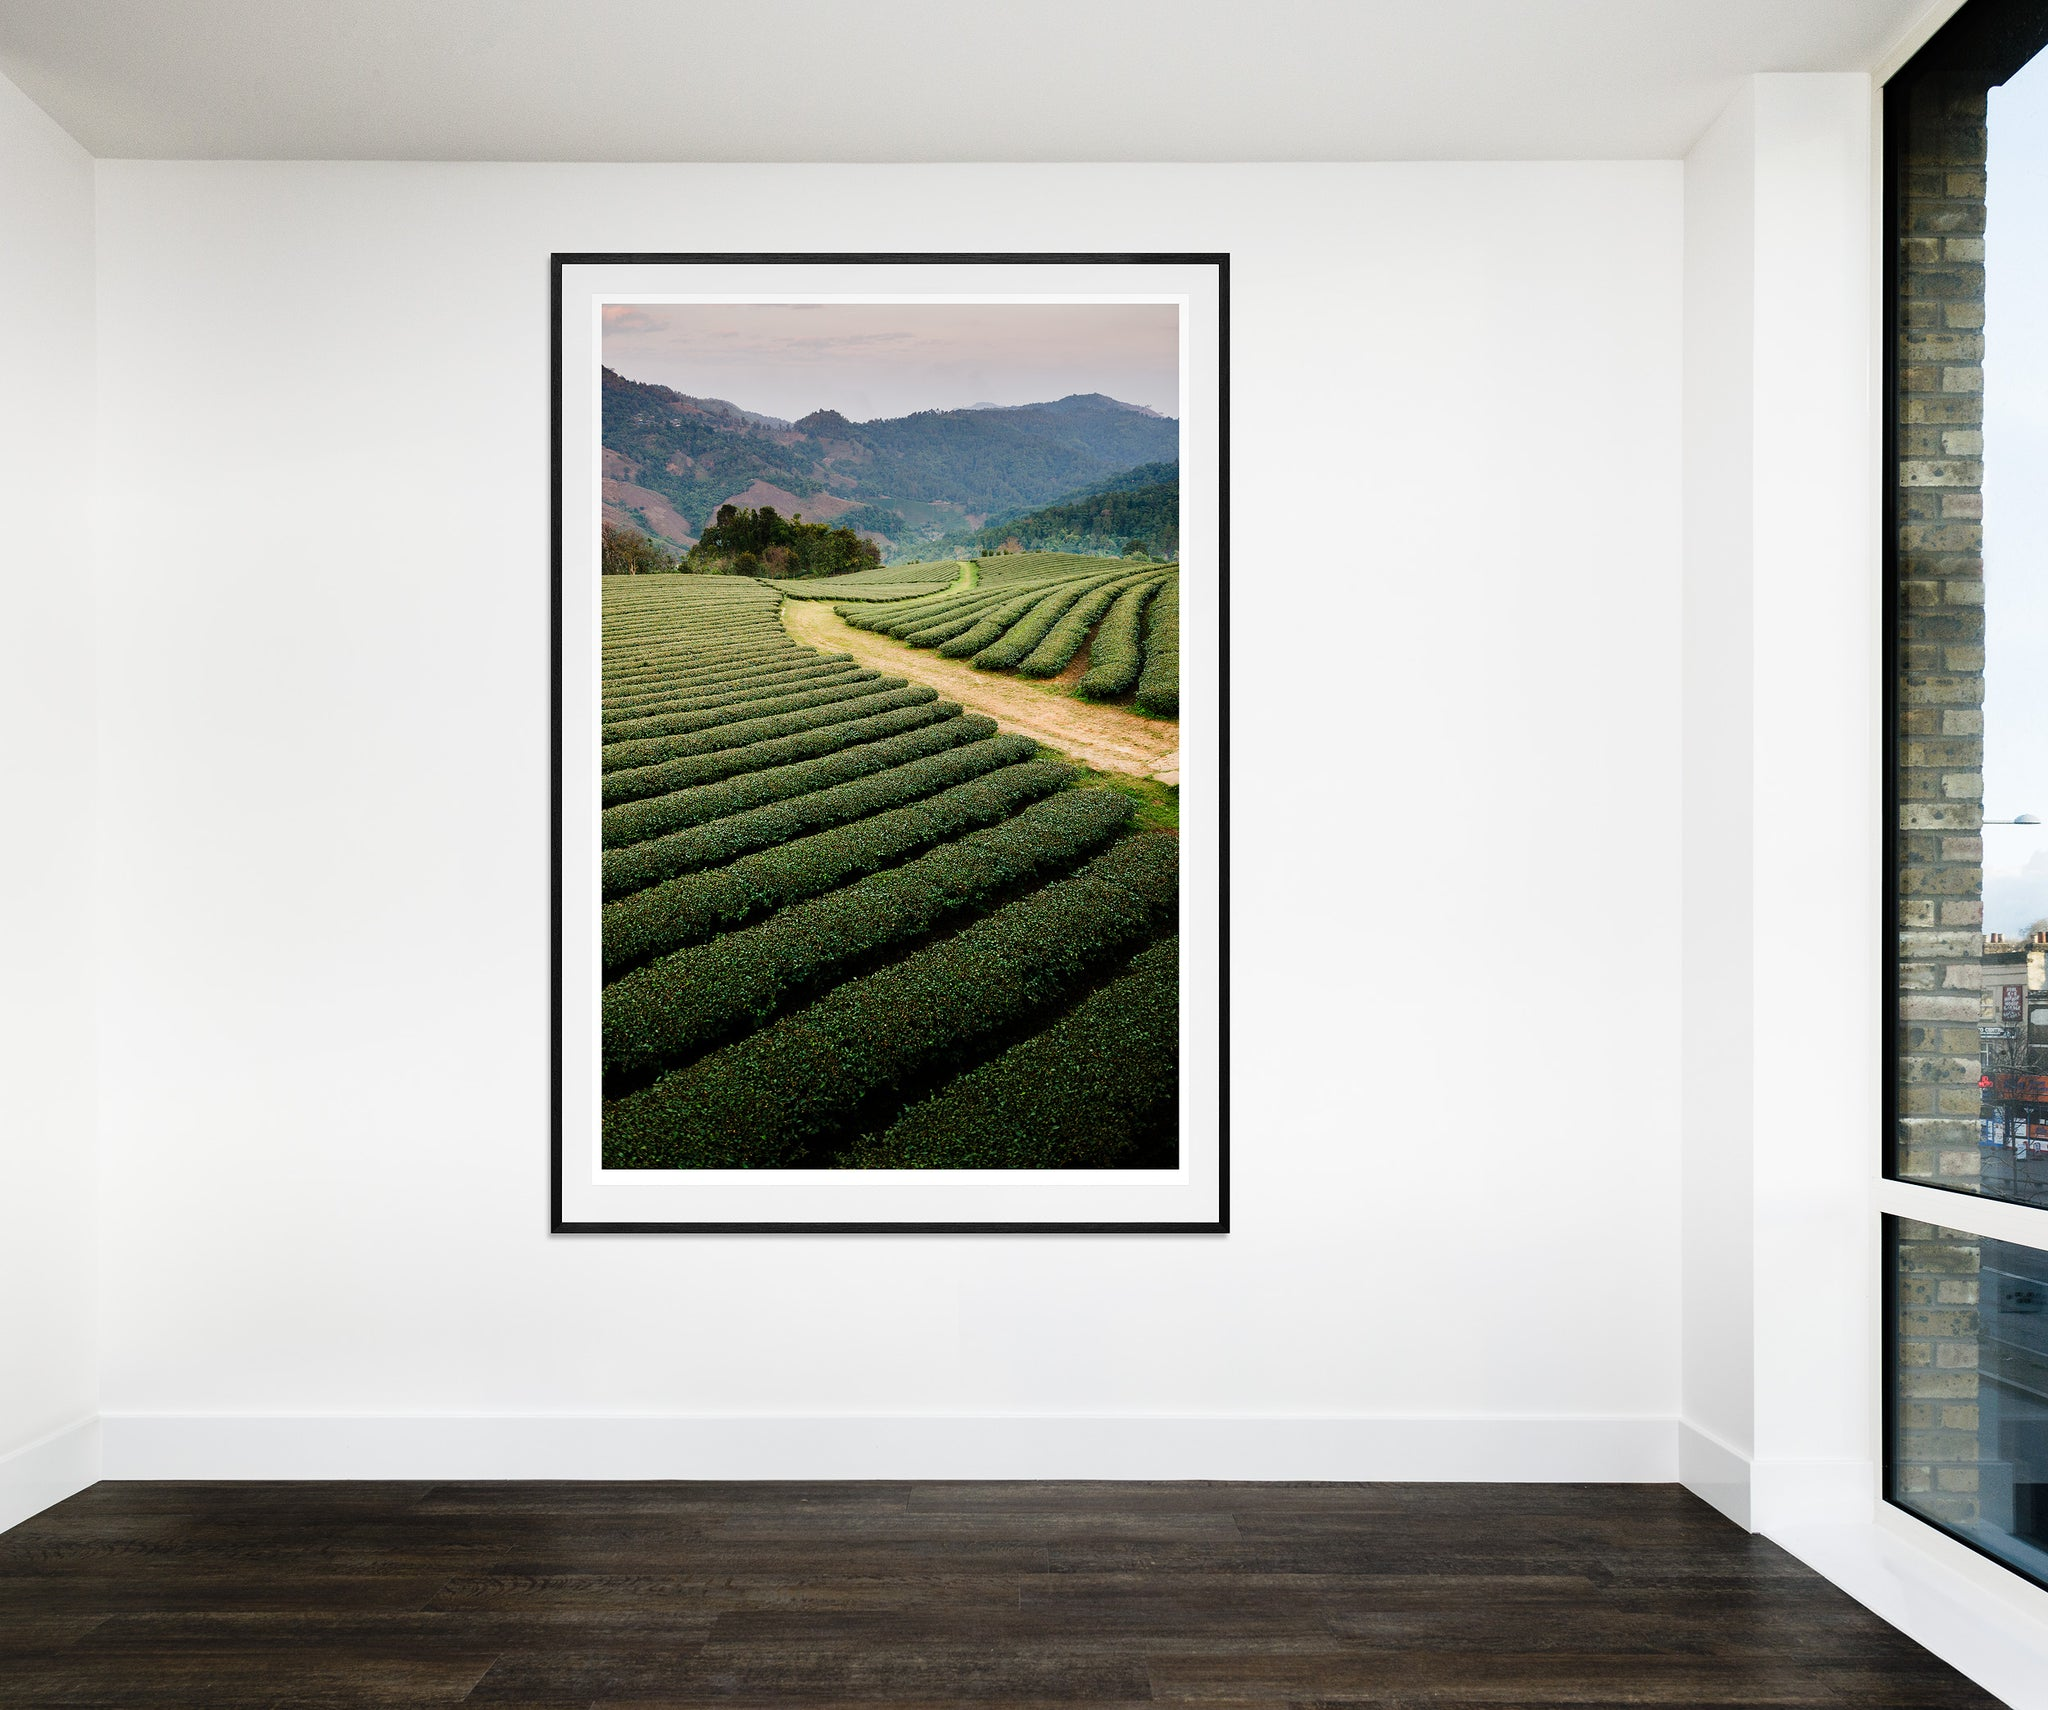 Mae Salong Tea Plantations, Thailand (136x203cm)